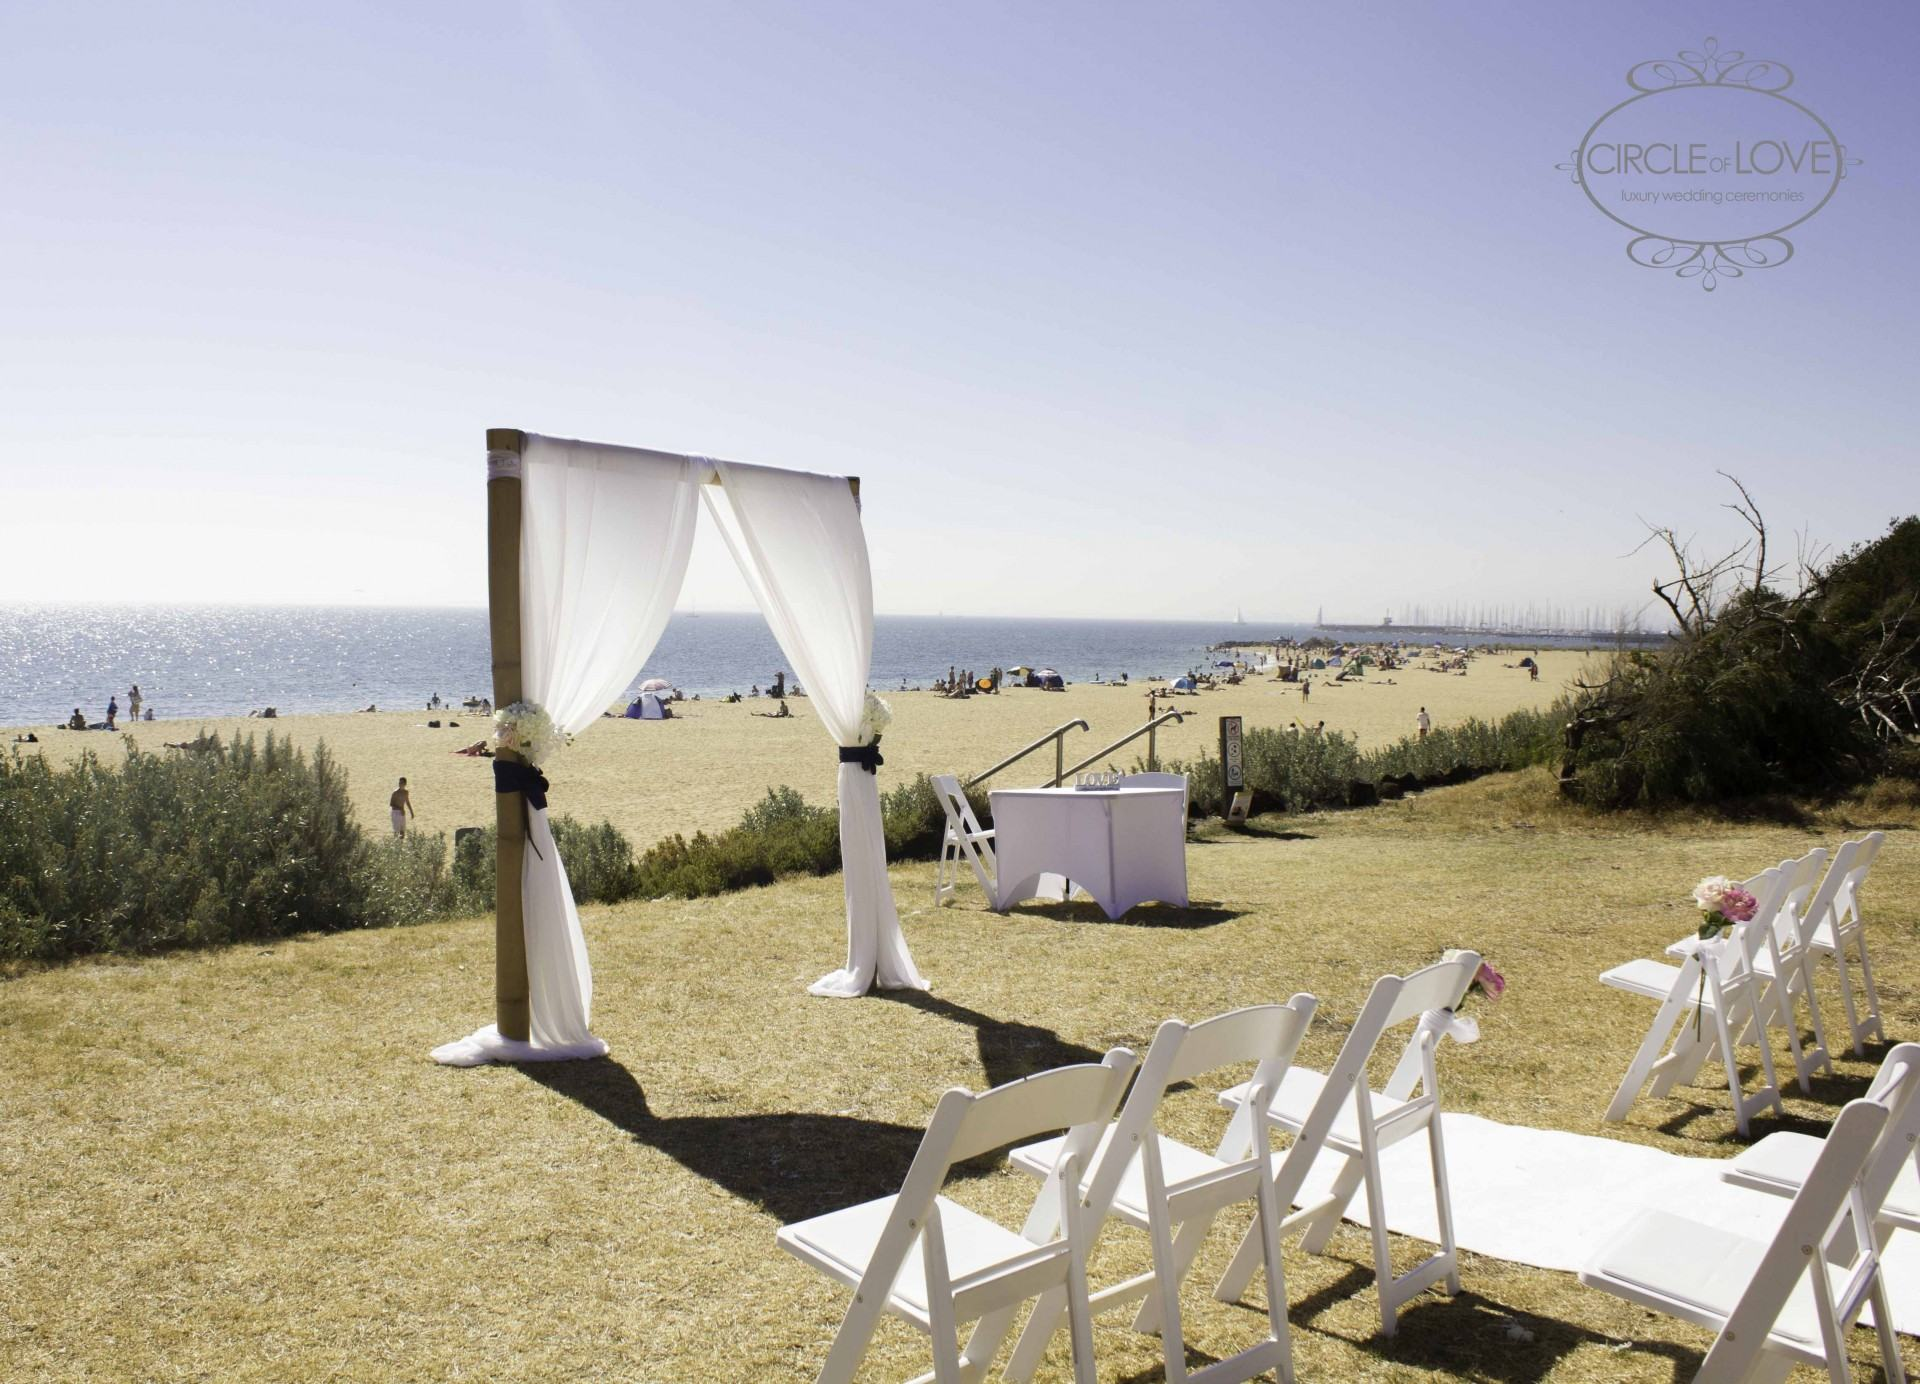 Photo of a wedding ceremony set up by the beach